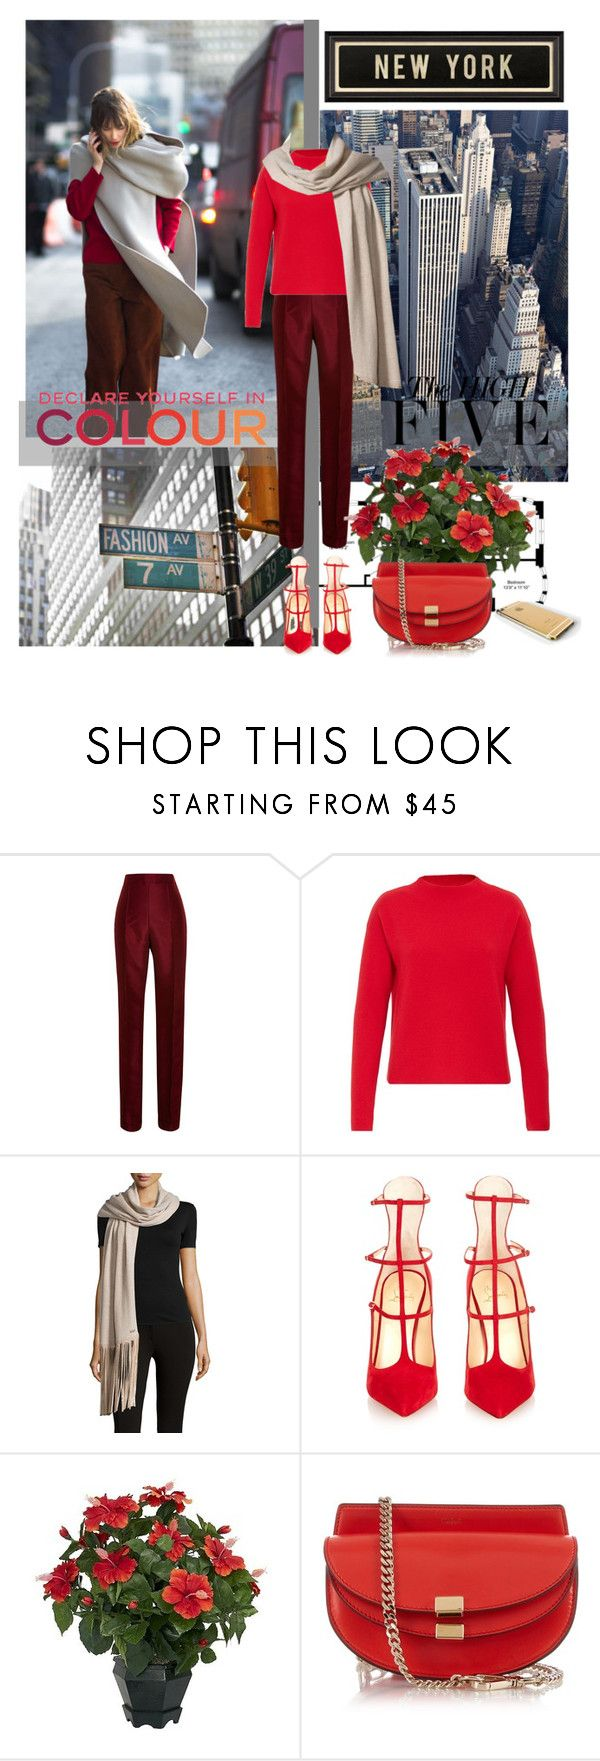 """Streets Of Color"" by jacque-reid ❤ liked on Polyvore featuring Lacava, Rosie Assoulin, Hallhuber, Armani Collezioni, Christian Louboutin, Nearly Natural, Chloé, Spicher and Company and Chanel"